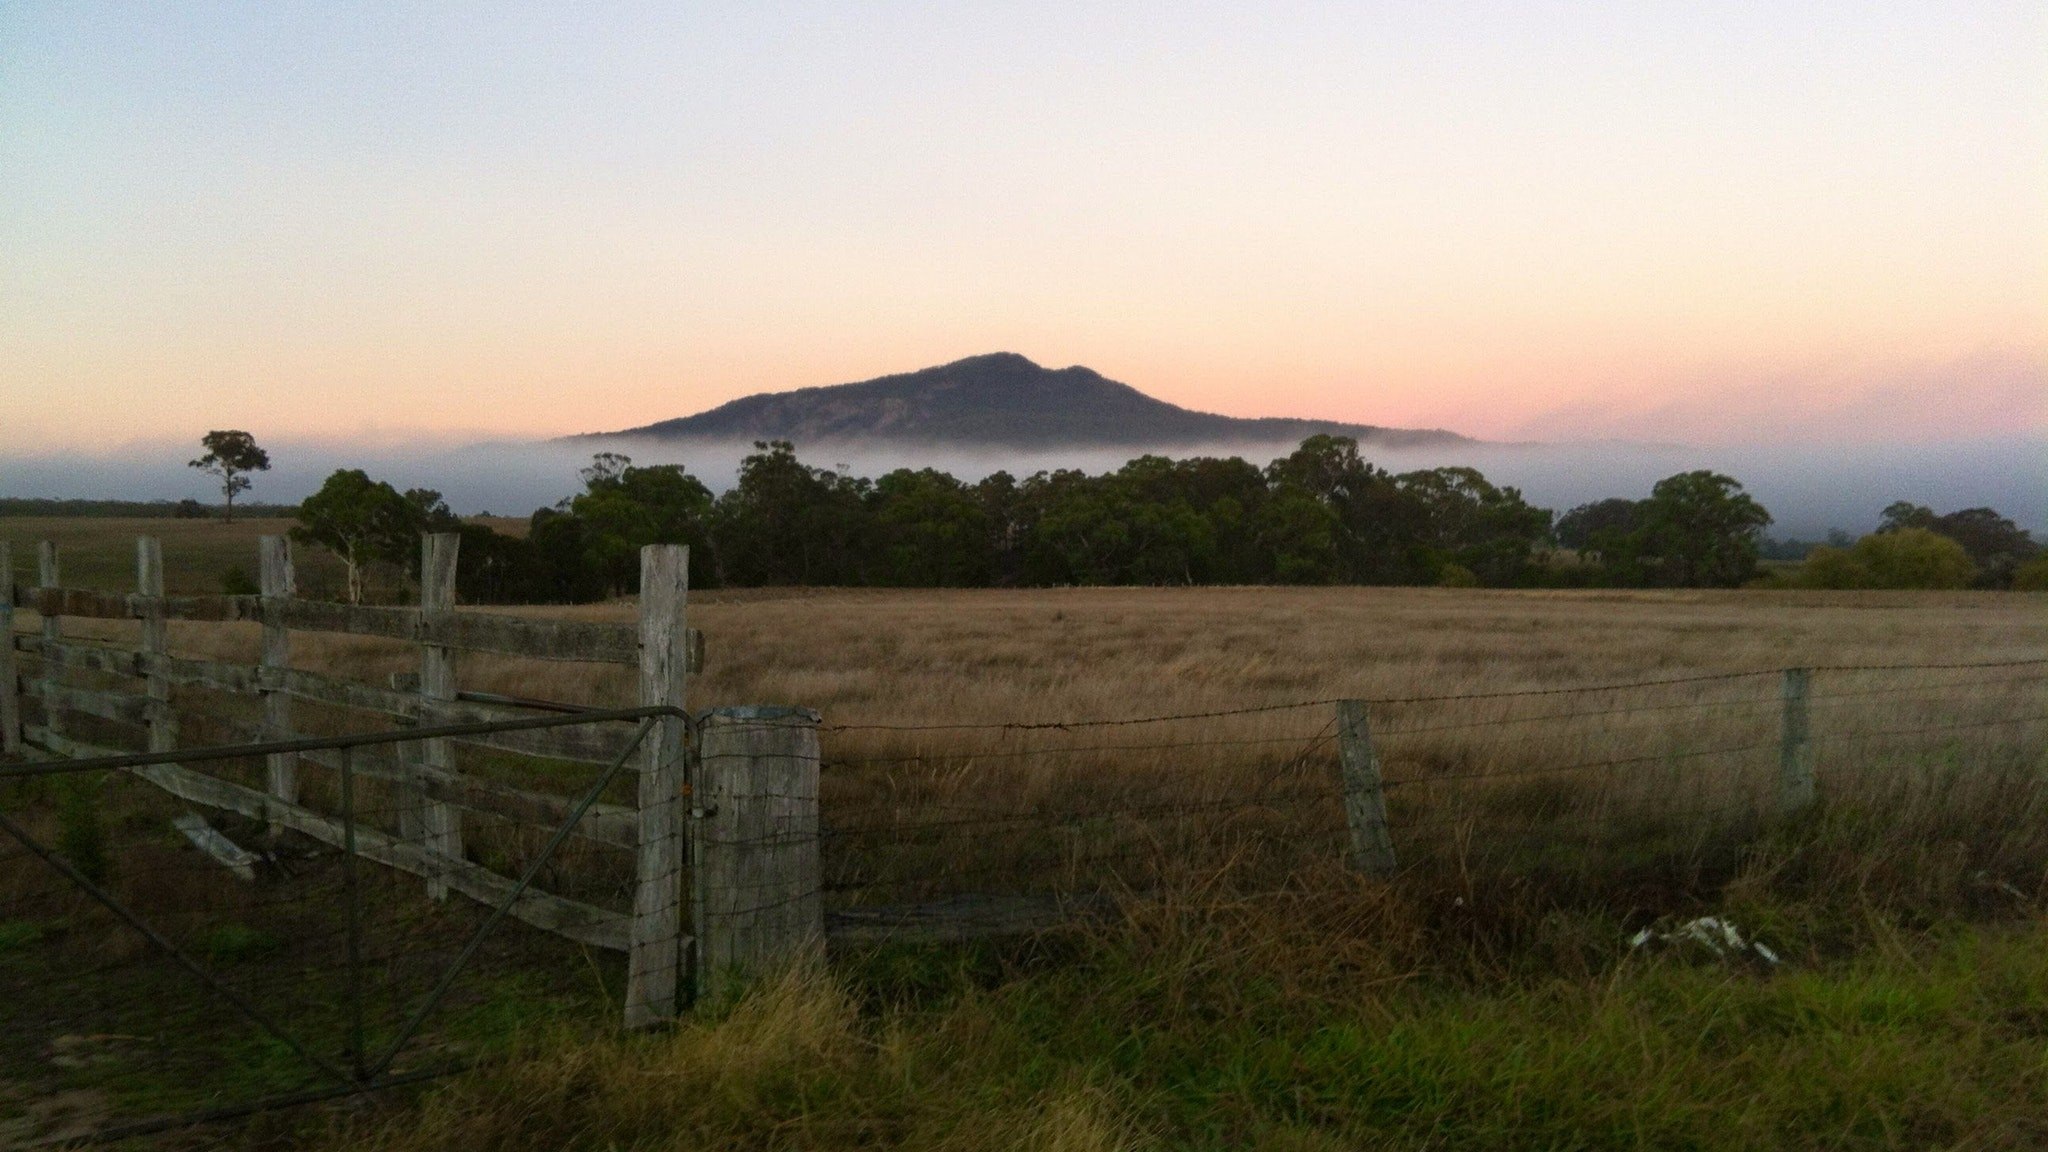 Mt Buangor first thing in the morning